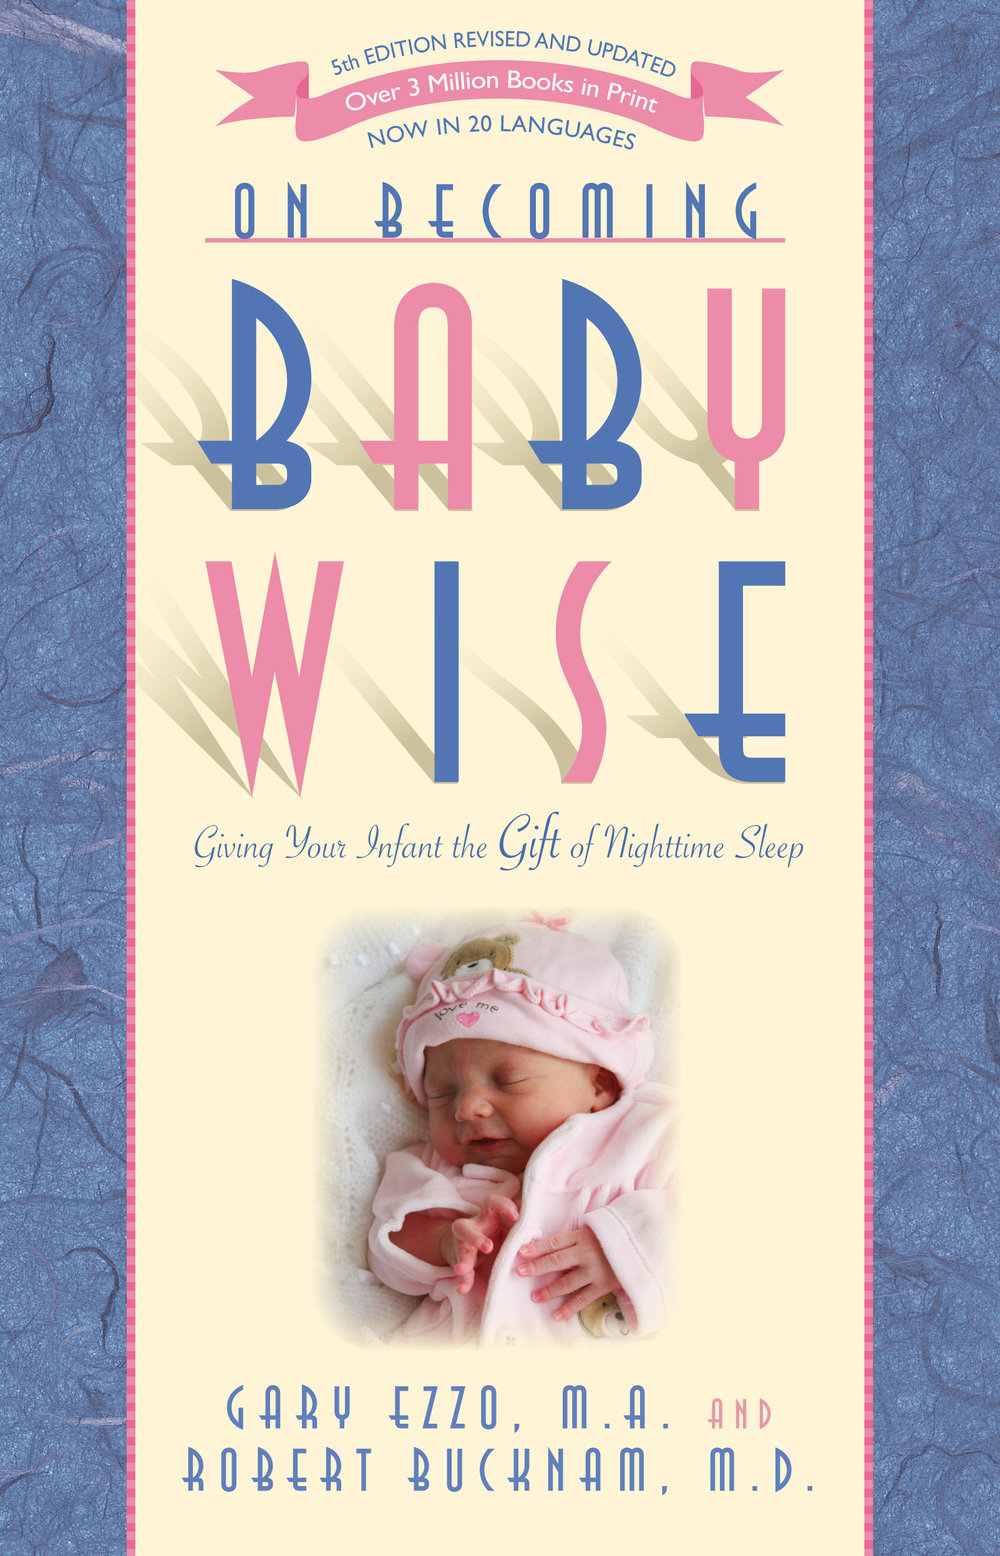 Babywise Cover 2016 PRESS.jpg